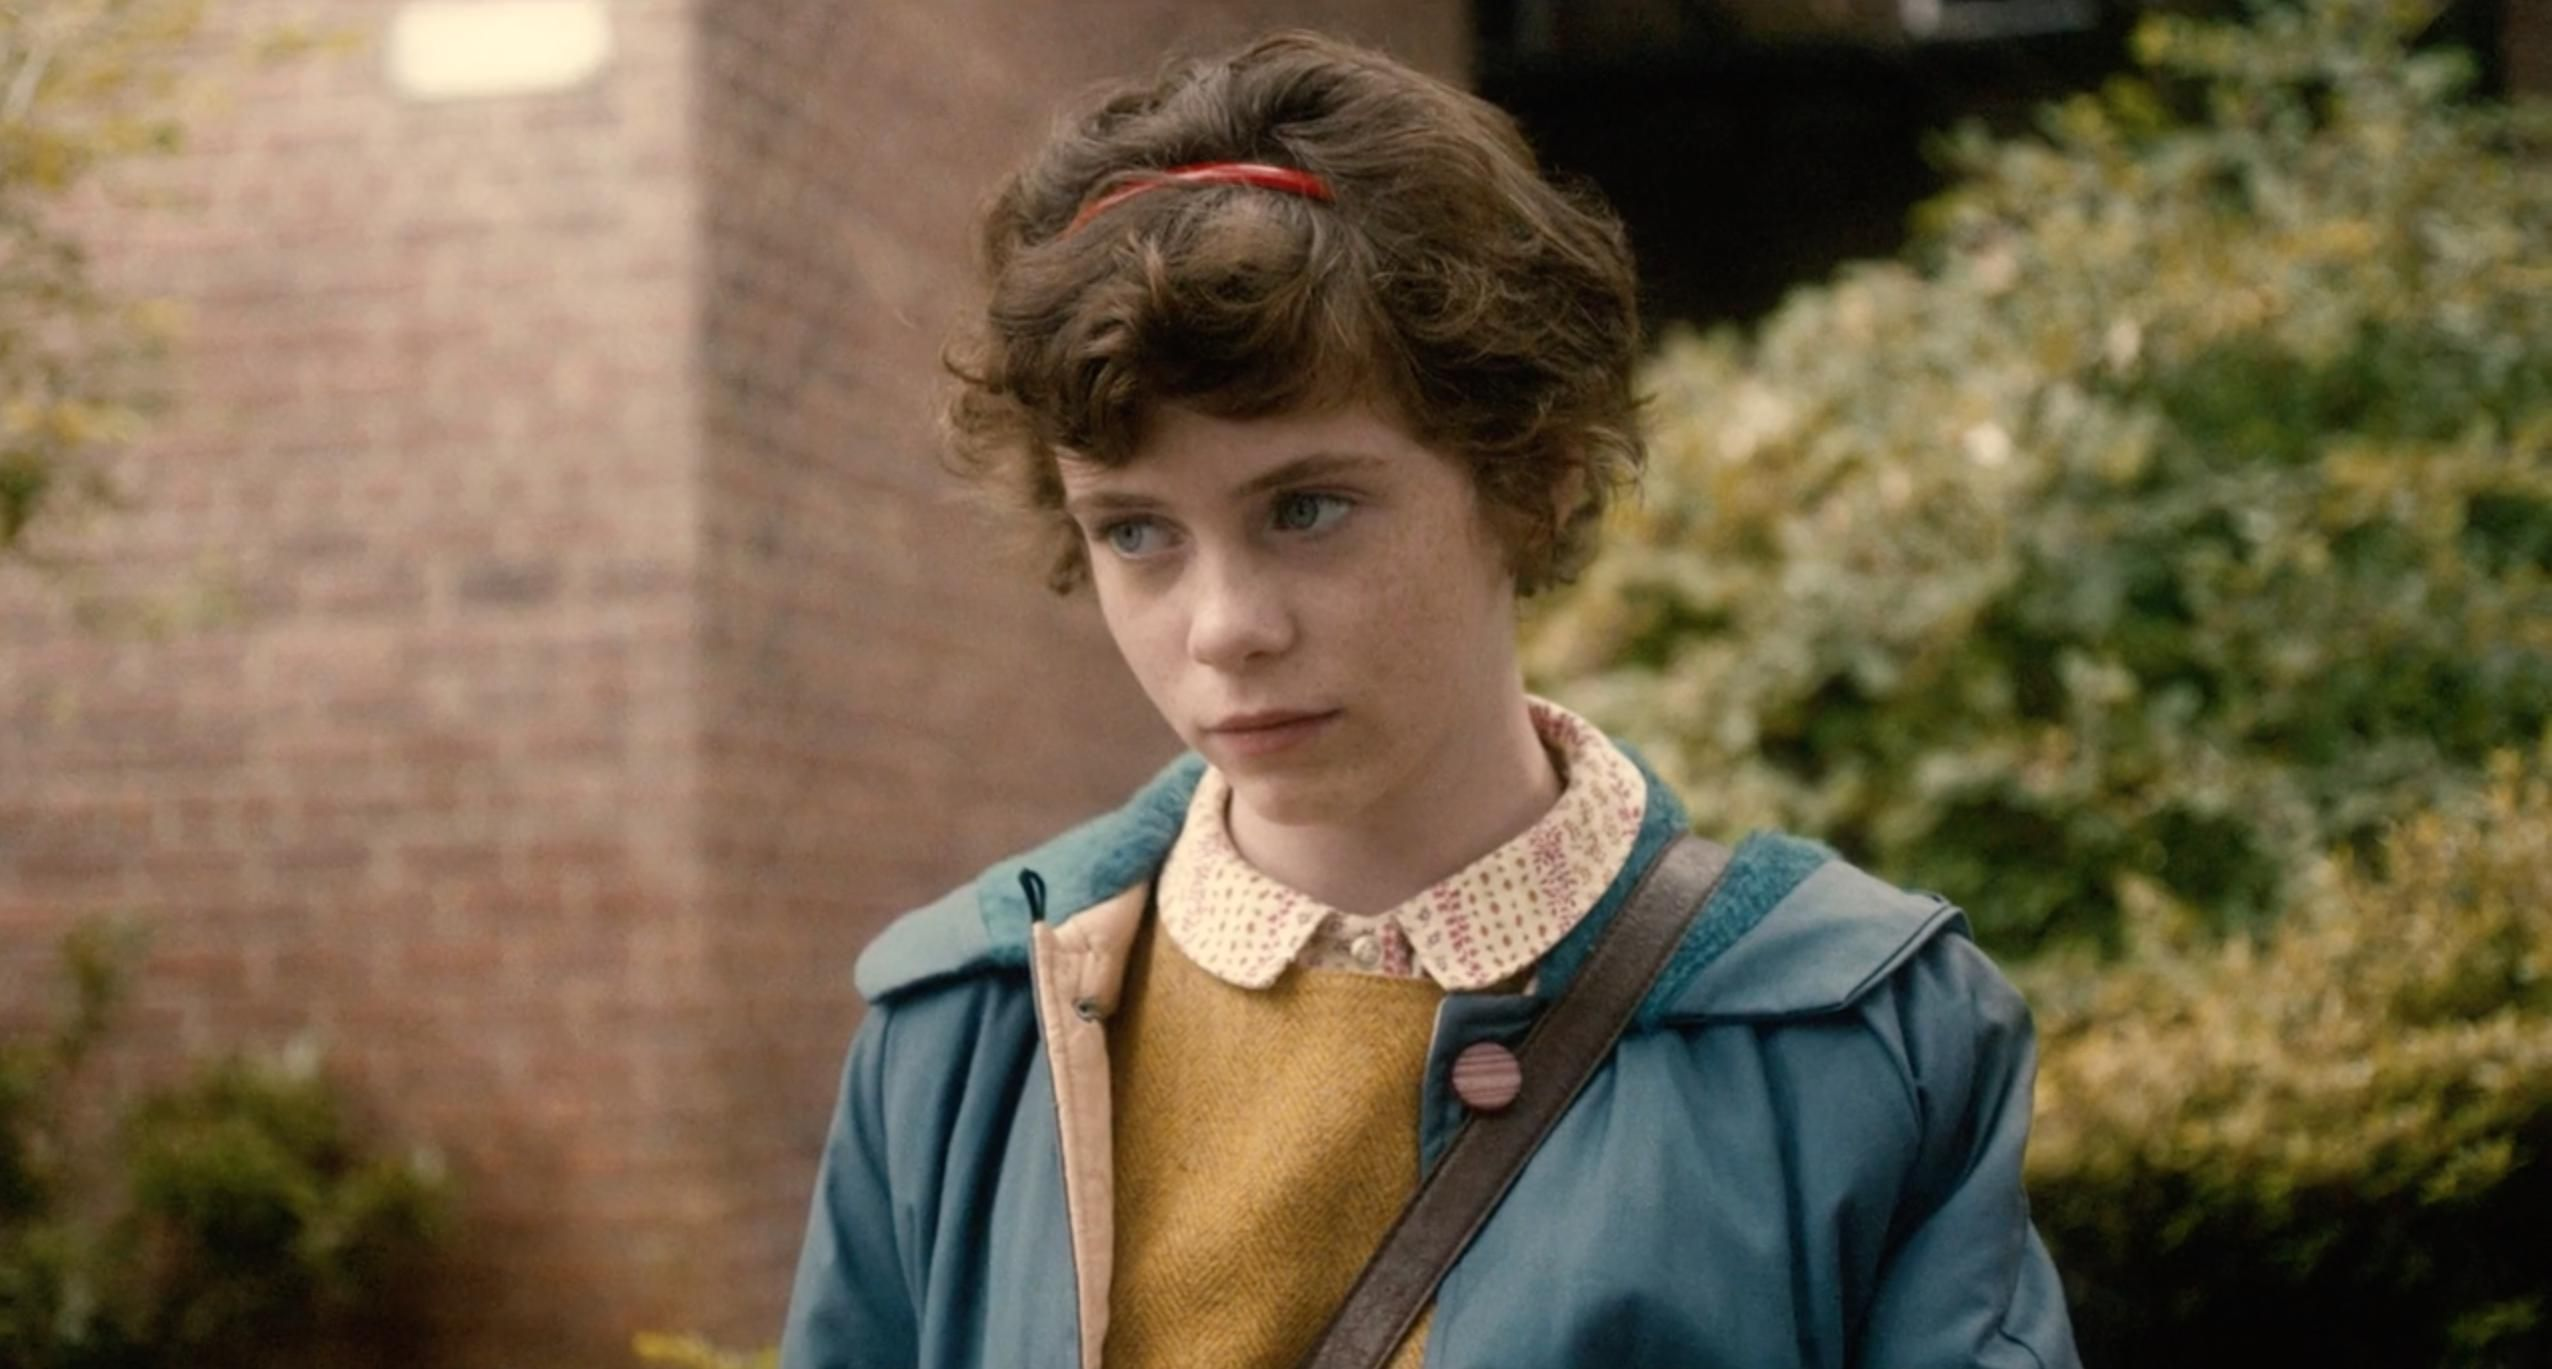 Pin by Rebeca on ♡♡♡♡sophia lillis♡♡♡♡ in 2020 | Beverly